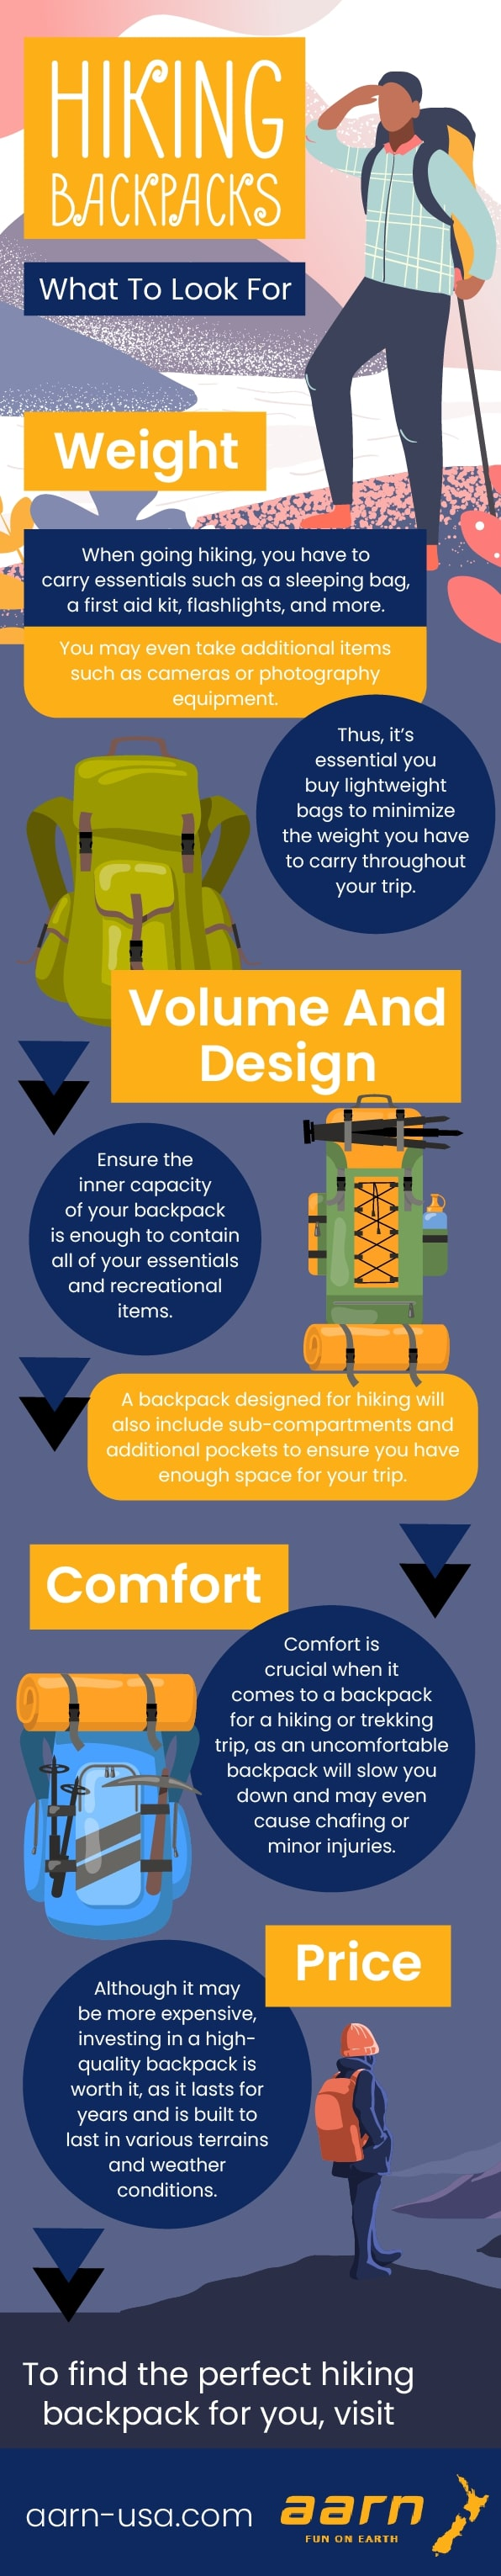 Hiking Backpacks - What To Look For Weight | Infographic